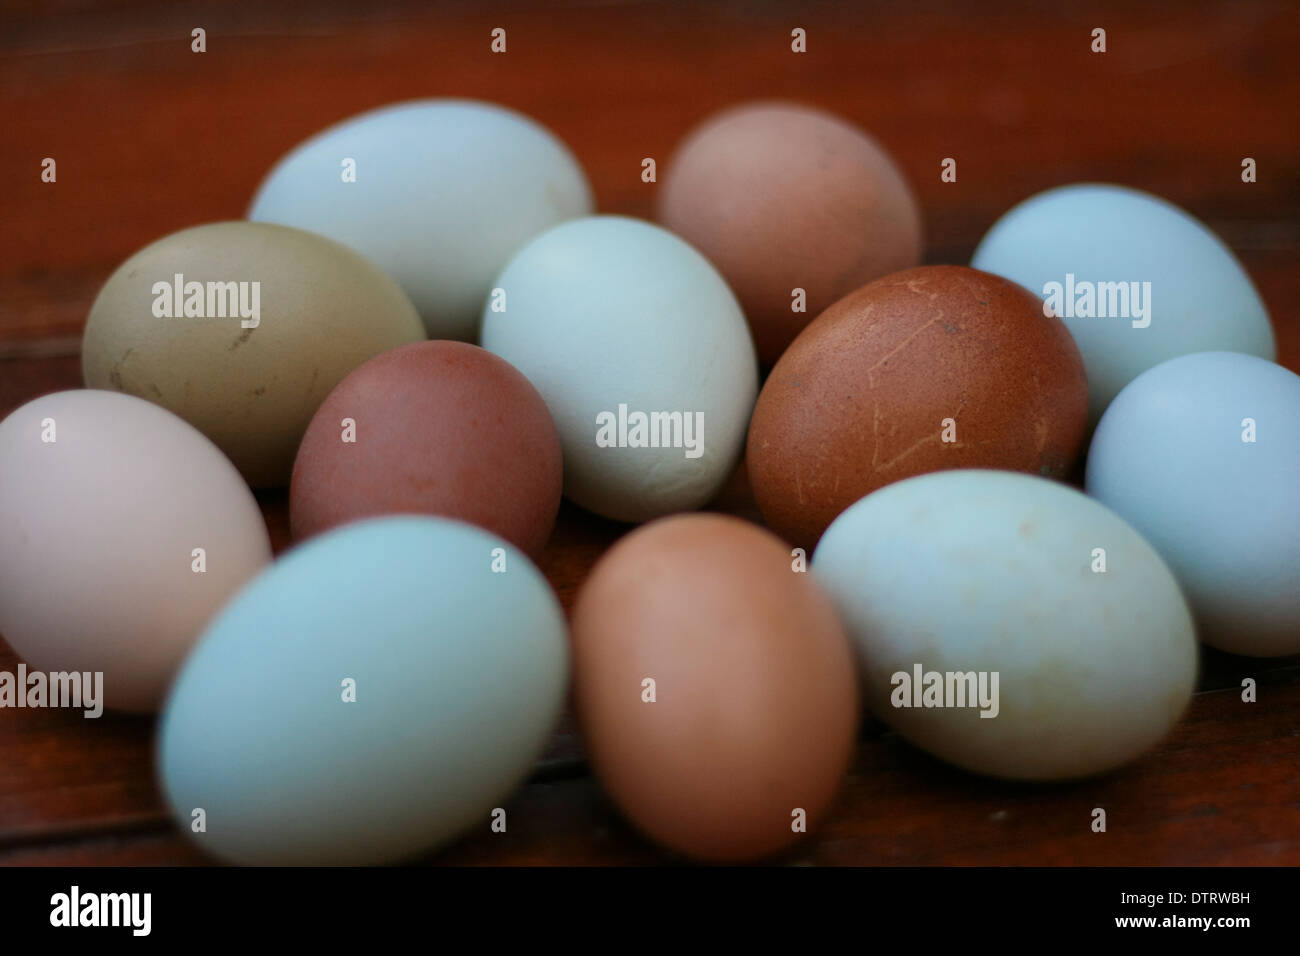 Natural Colored Eggs High Resolution Stock Photography And Images Alamy